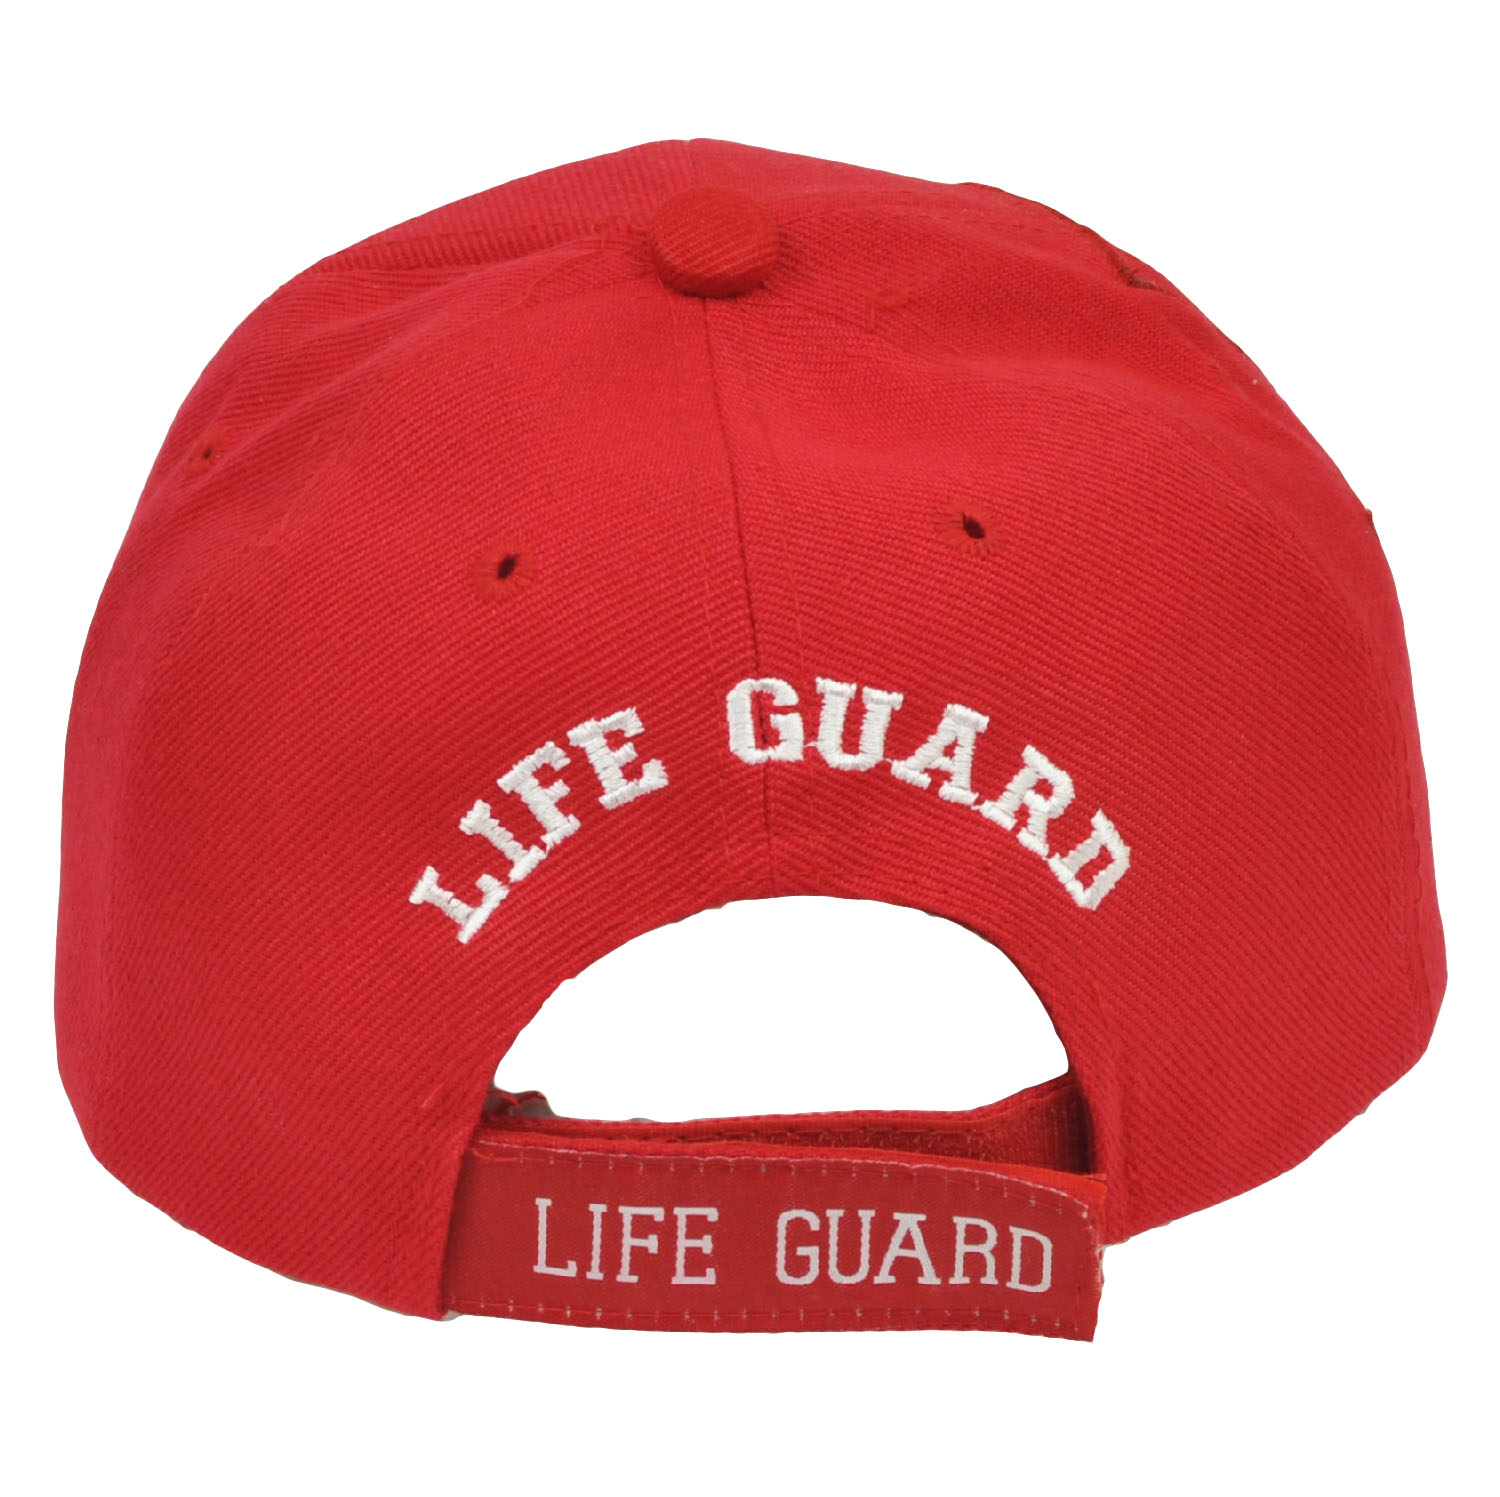 Details about Lifeguard Life Guard Beach Patrol Red Adjustable Mens One  Size White Cap Hat 1cdb0ed05